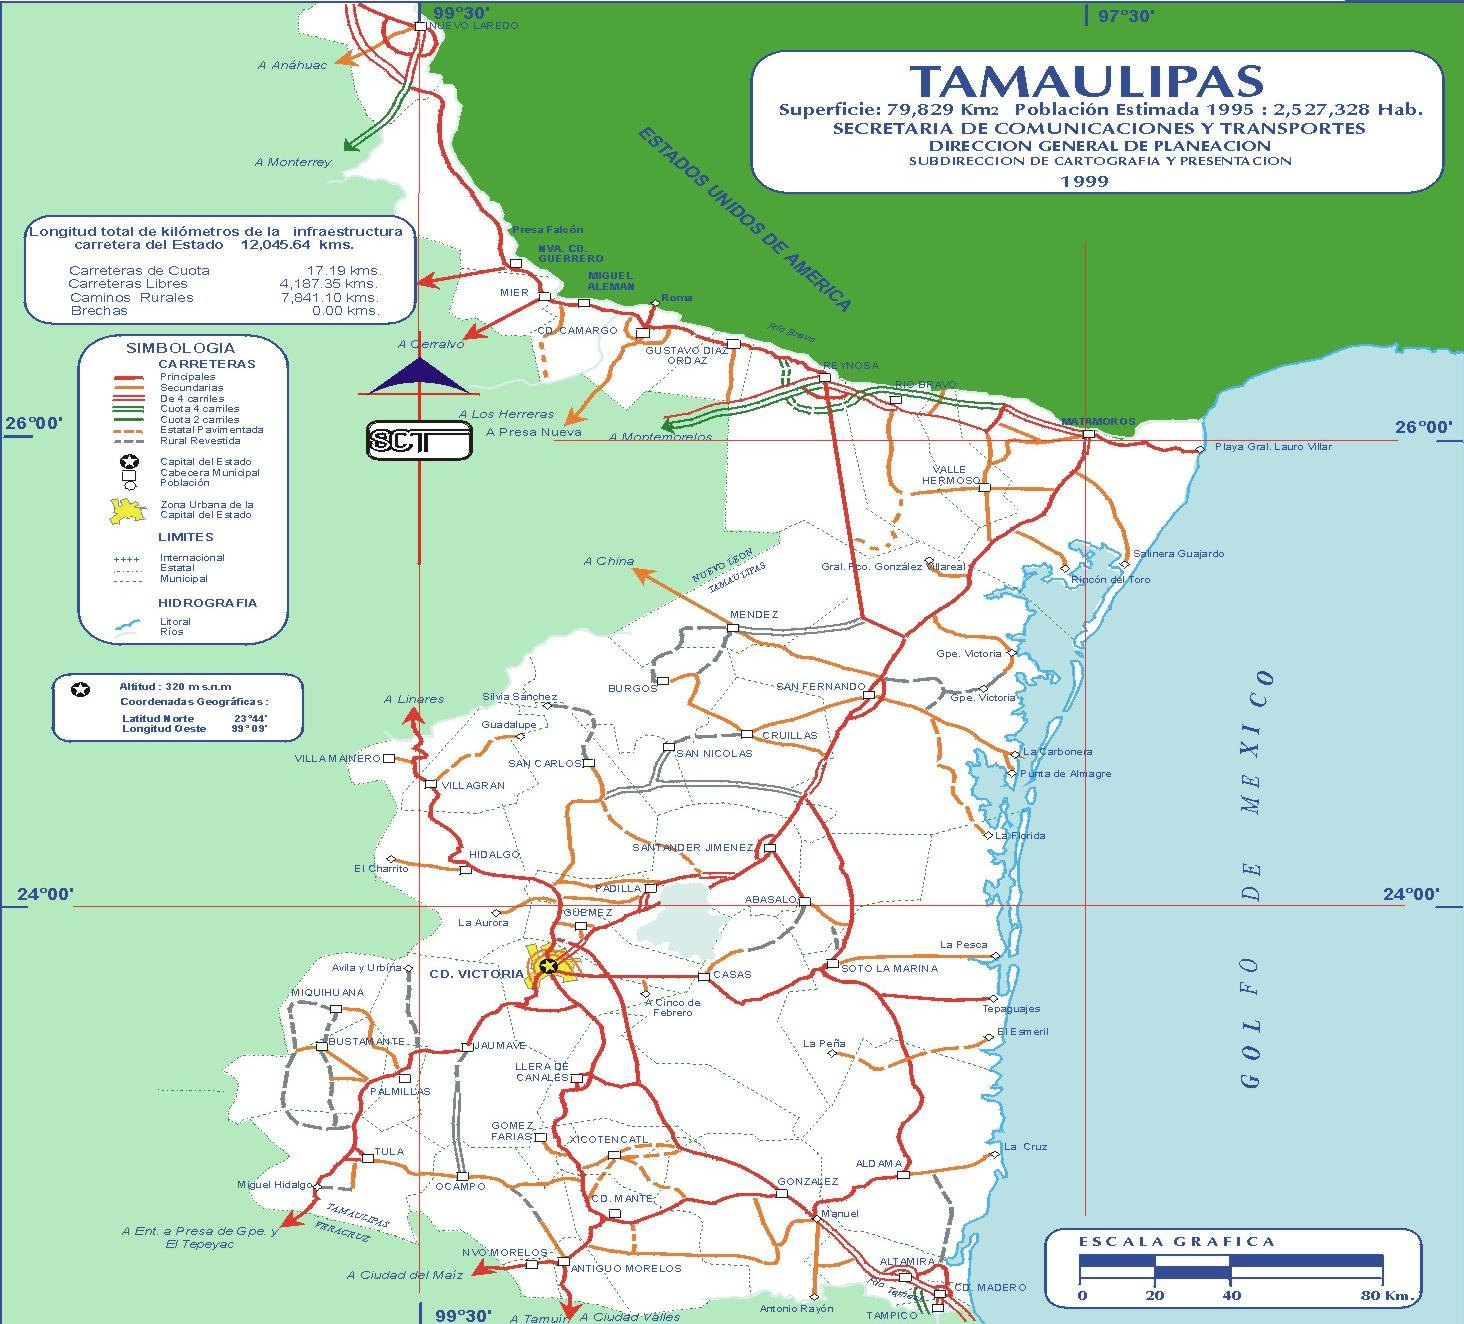 Map of Tamaulipas (State), Mexico